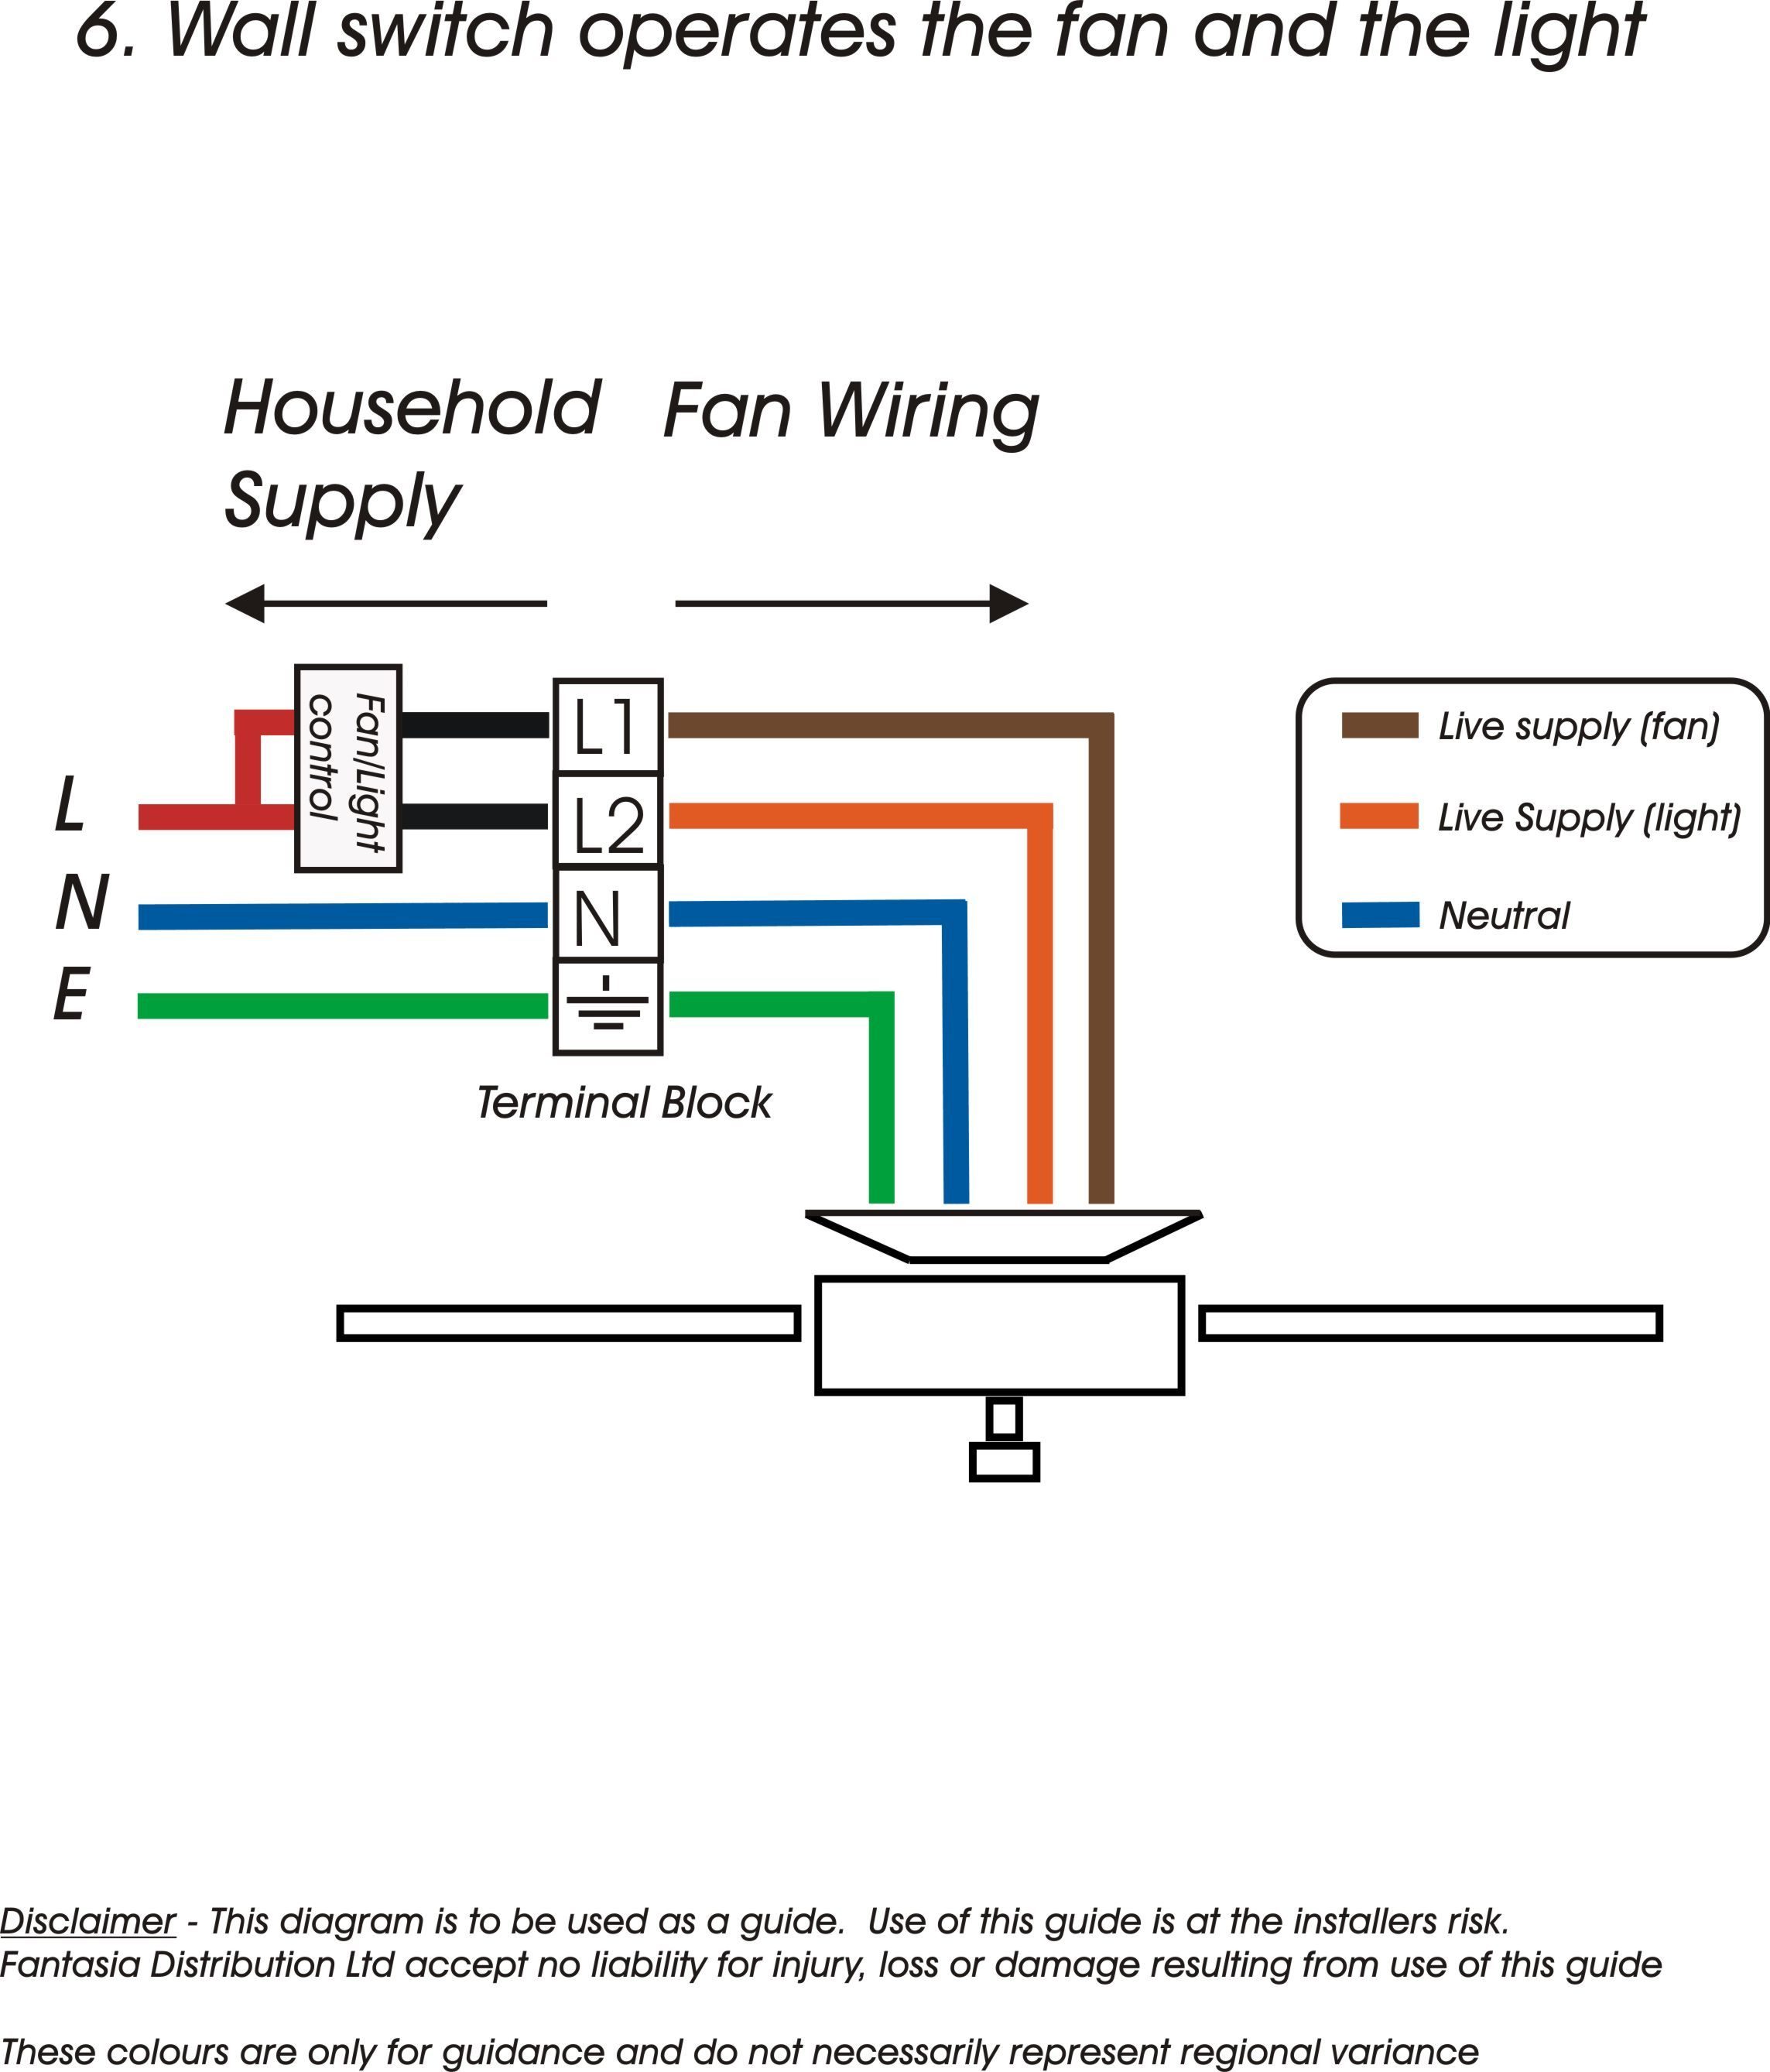 Wiring Diagram For Ceiling Fan With Light And Remote Bookingritzcarlton Info Ceiling Fan Wiring Ceiling Fan Switch Light Switch Wiring